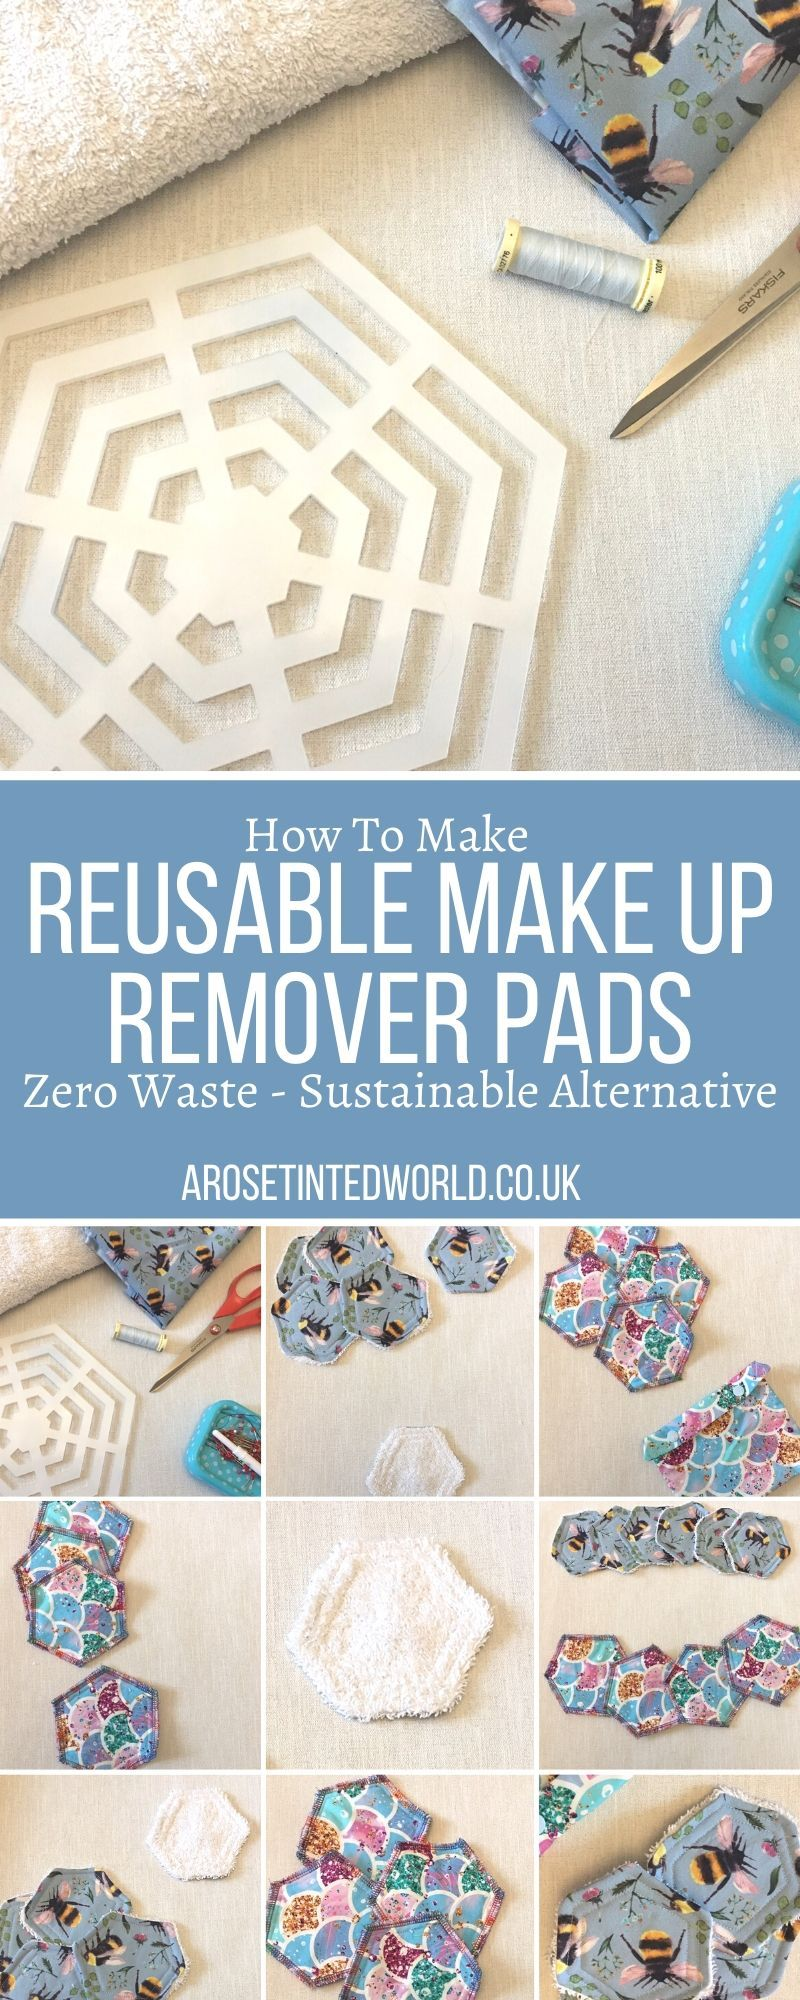 How To Make Reusable Make Up Remover Pads ⋆ A Rose Tinted